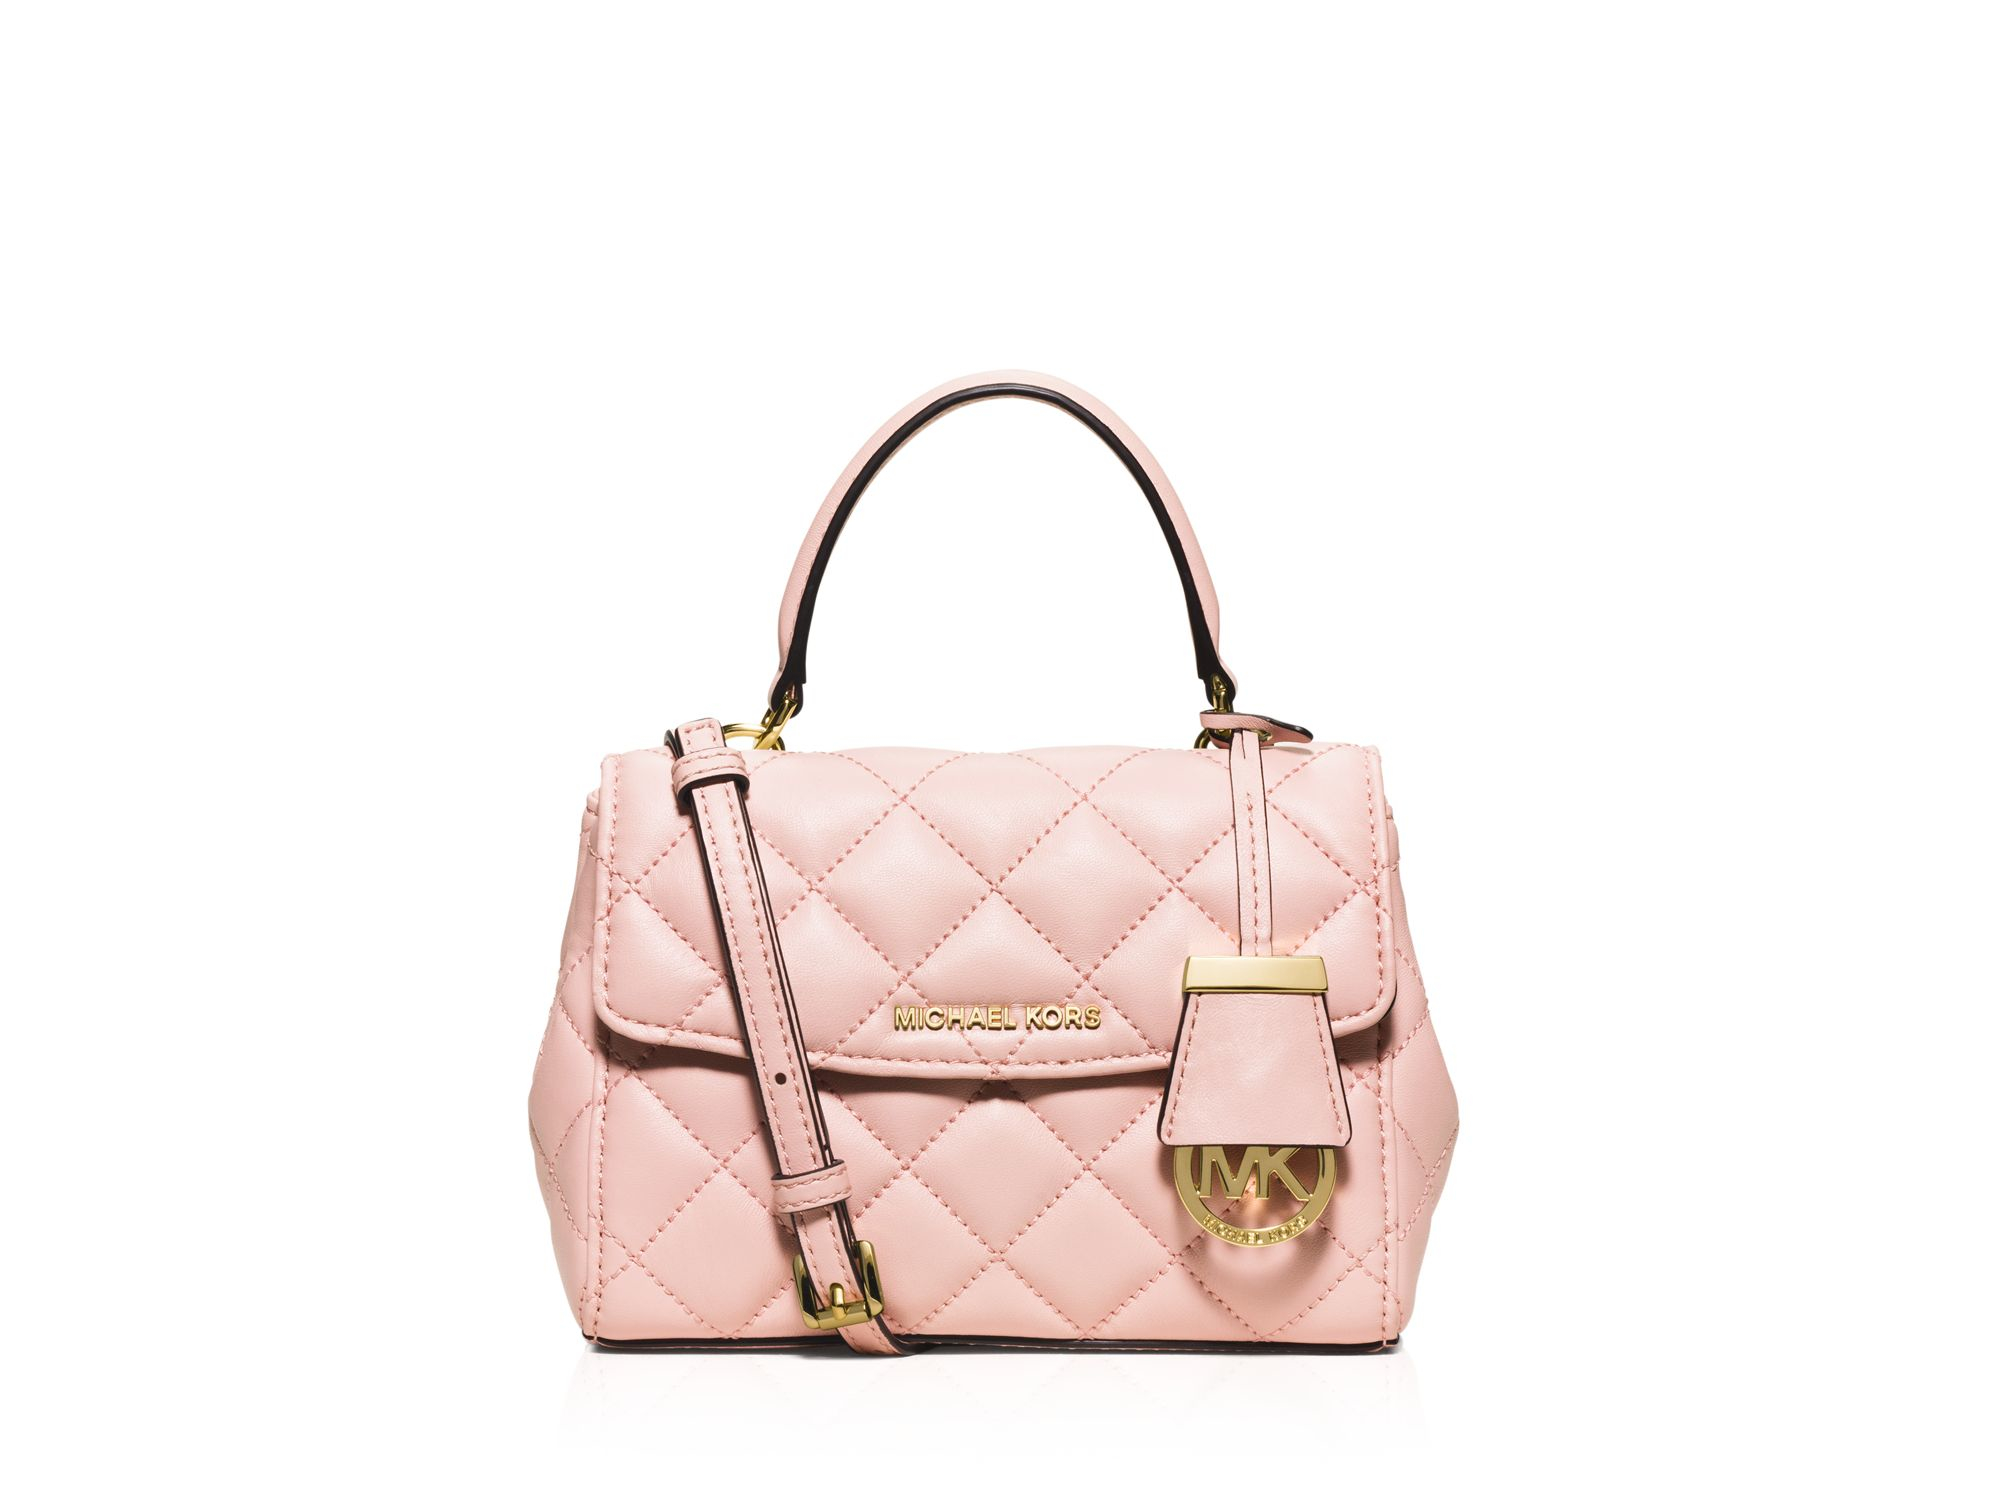 937c1588a4f7 Gallery. Previously sold at  Bloomingdale s · Women s Michael Kors Quilted  Bag ...